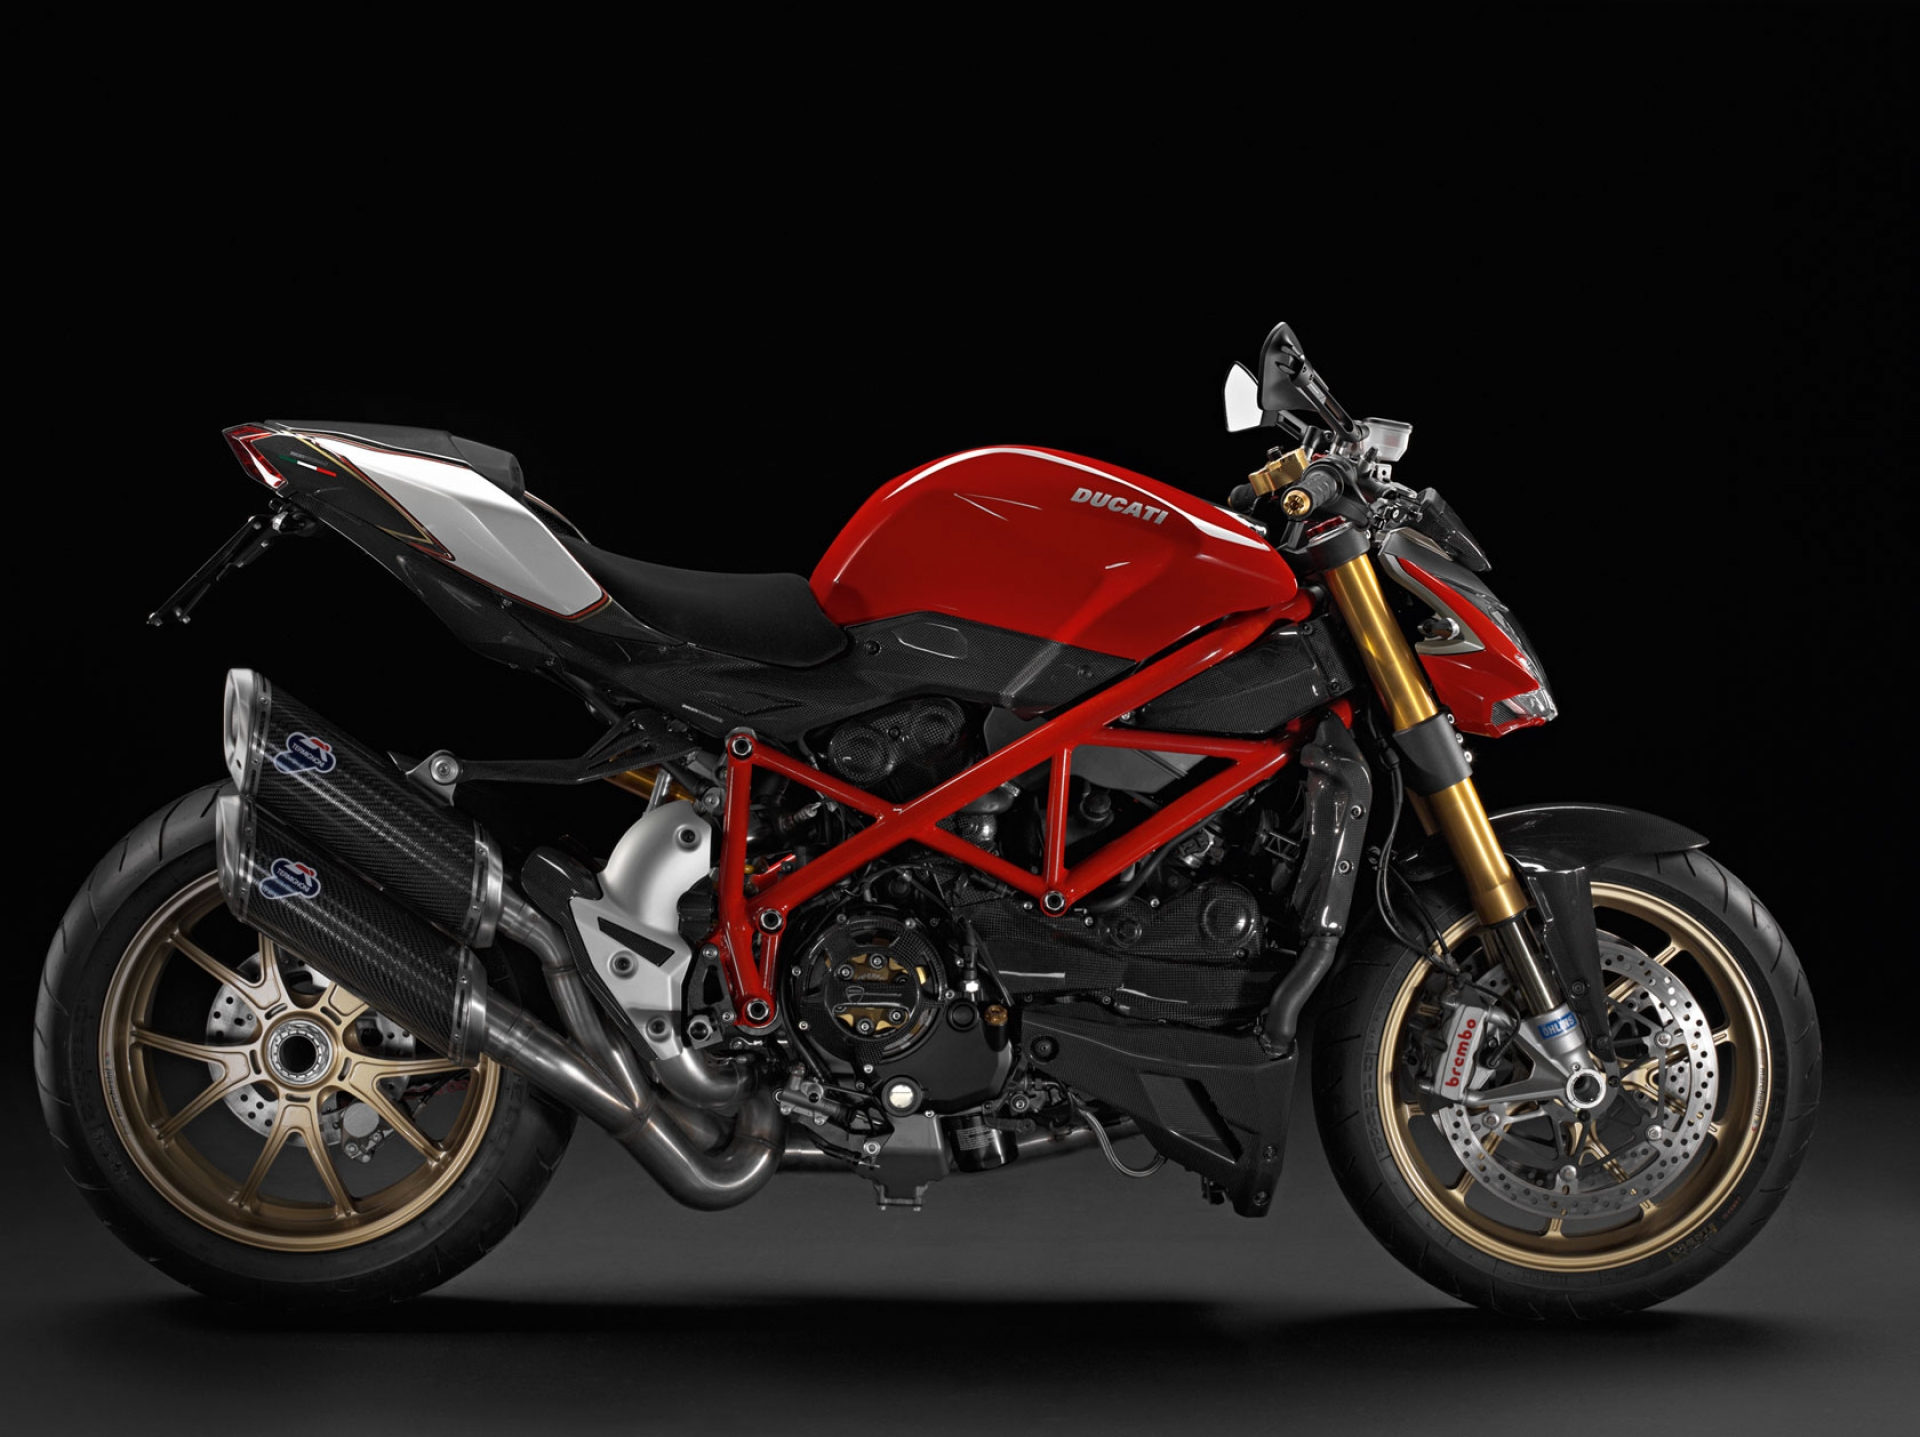 Ducati Streetfighter S 2013 wallpapers #12847